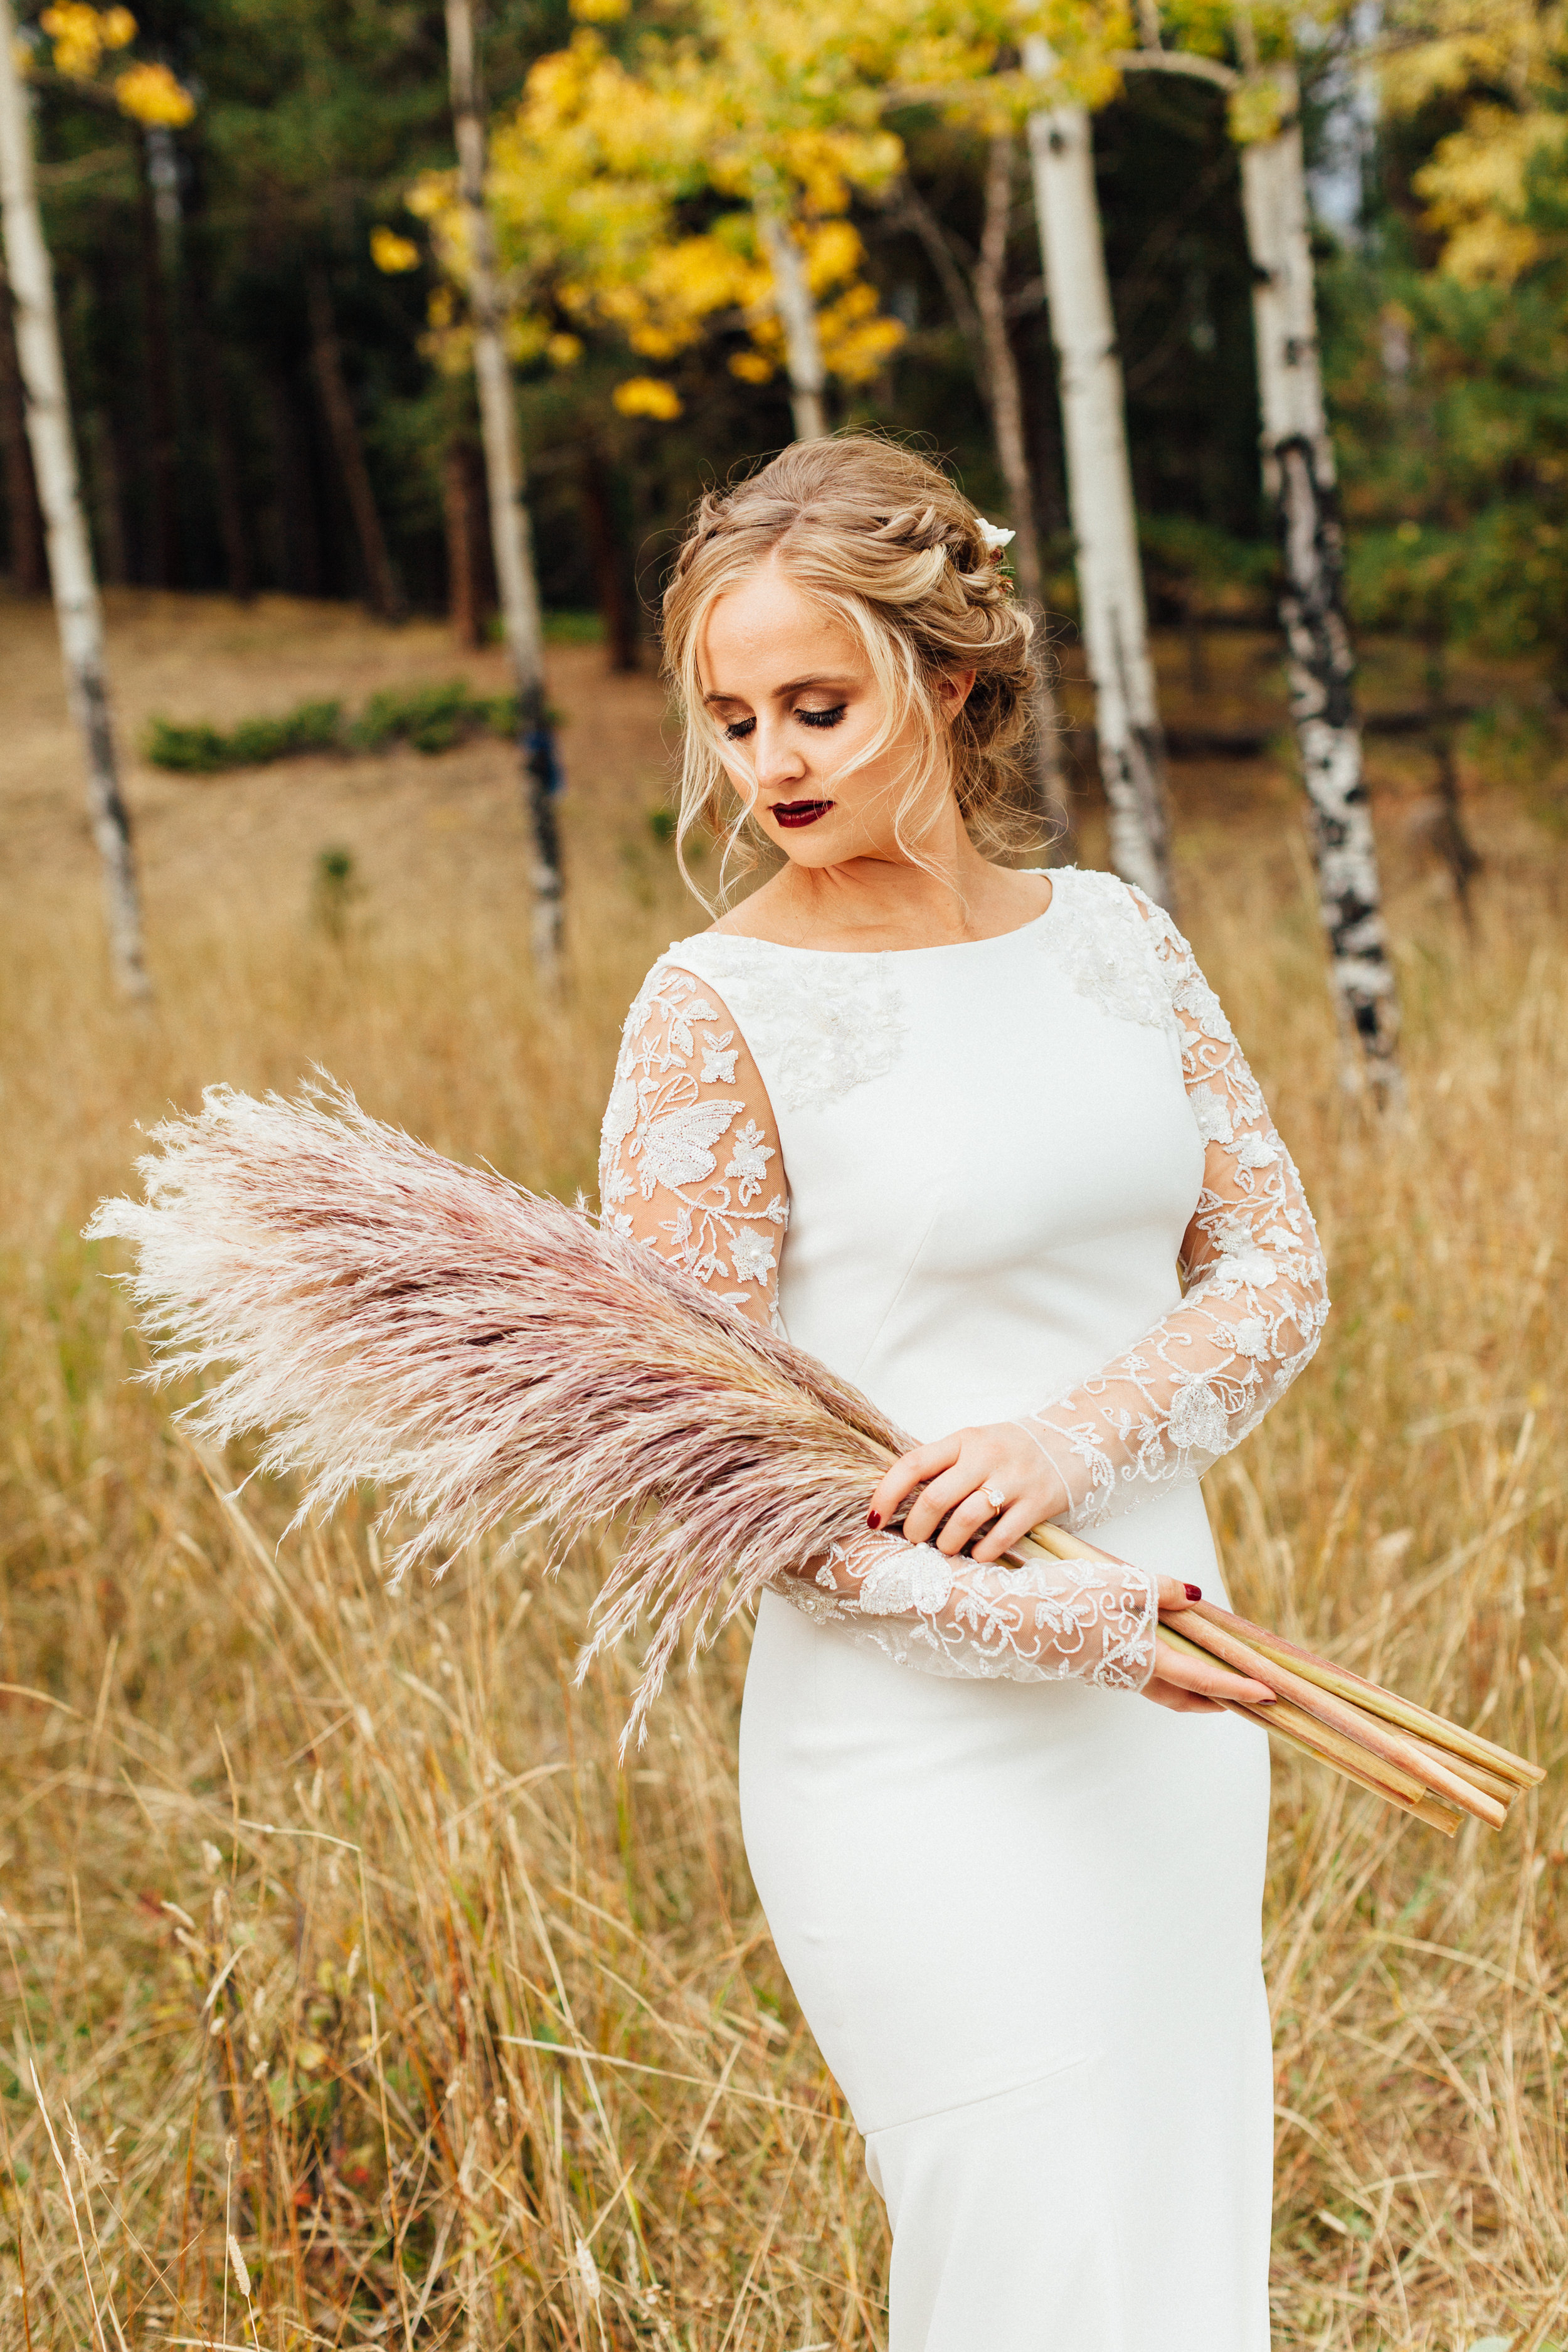 Photography: Brad Livengood Photography  Makeup: Smash Beauty Bar  Hair: Laura Gravina  Dress: Brilliant Bridal  Dress Designer: Theia Couture  Florals: Bliss Wedding Florist  Ring: Sarah O Jewelry